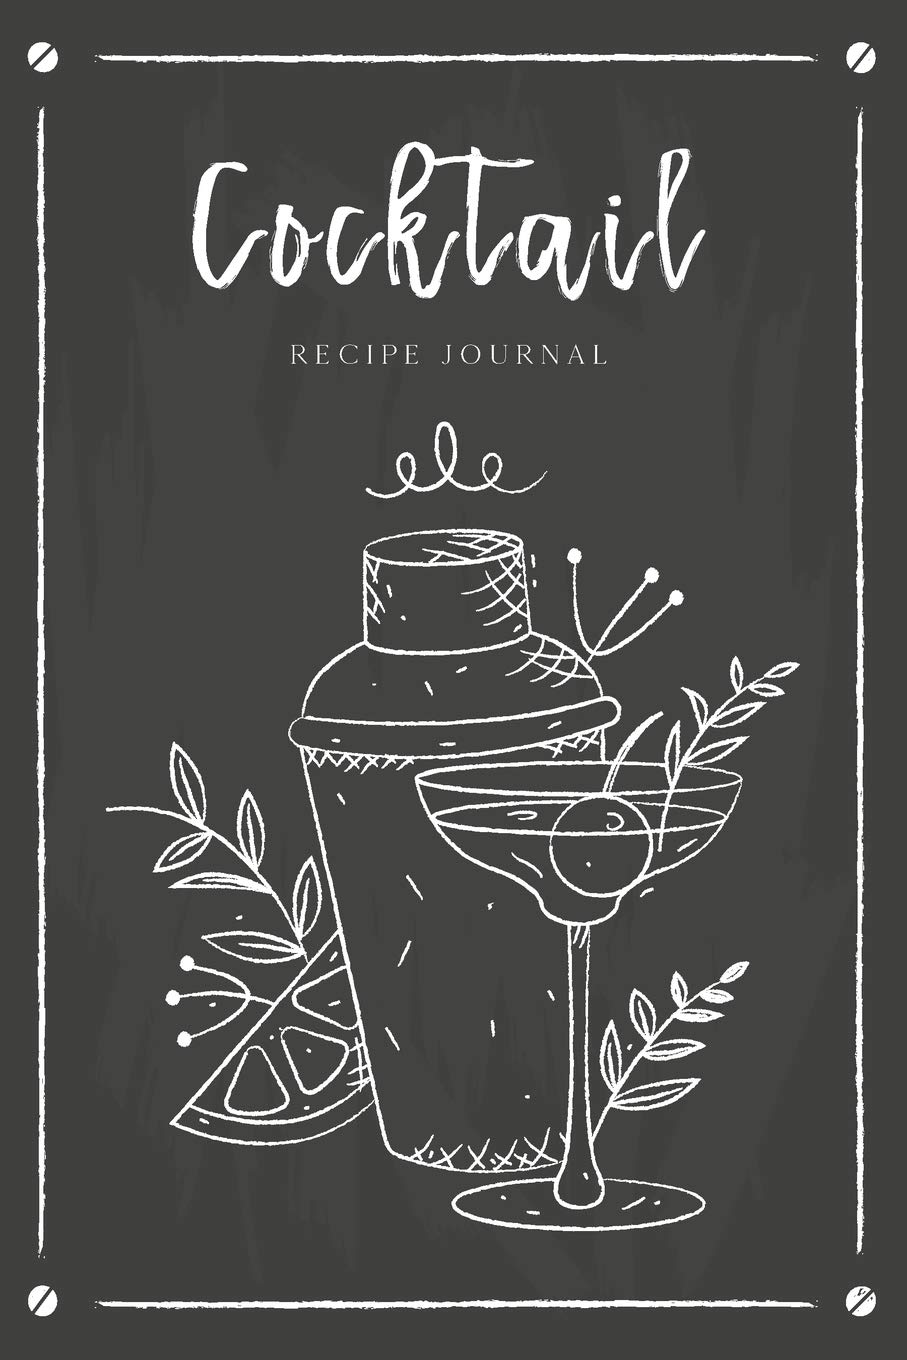 Cocktail Recipe Journal Record Favorite Recipes Ingredients Organizer Drinks Rating Tasting Journal Beverages Cocktails Book Creations Michelia 9781796902877 Amazon Com Books